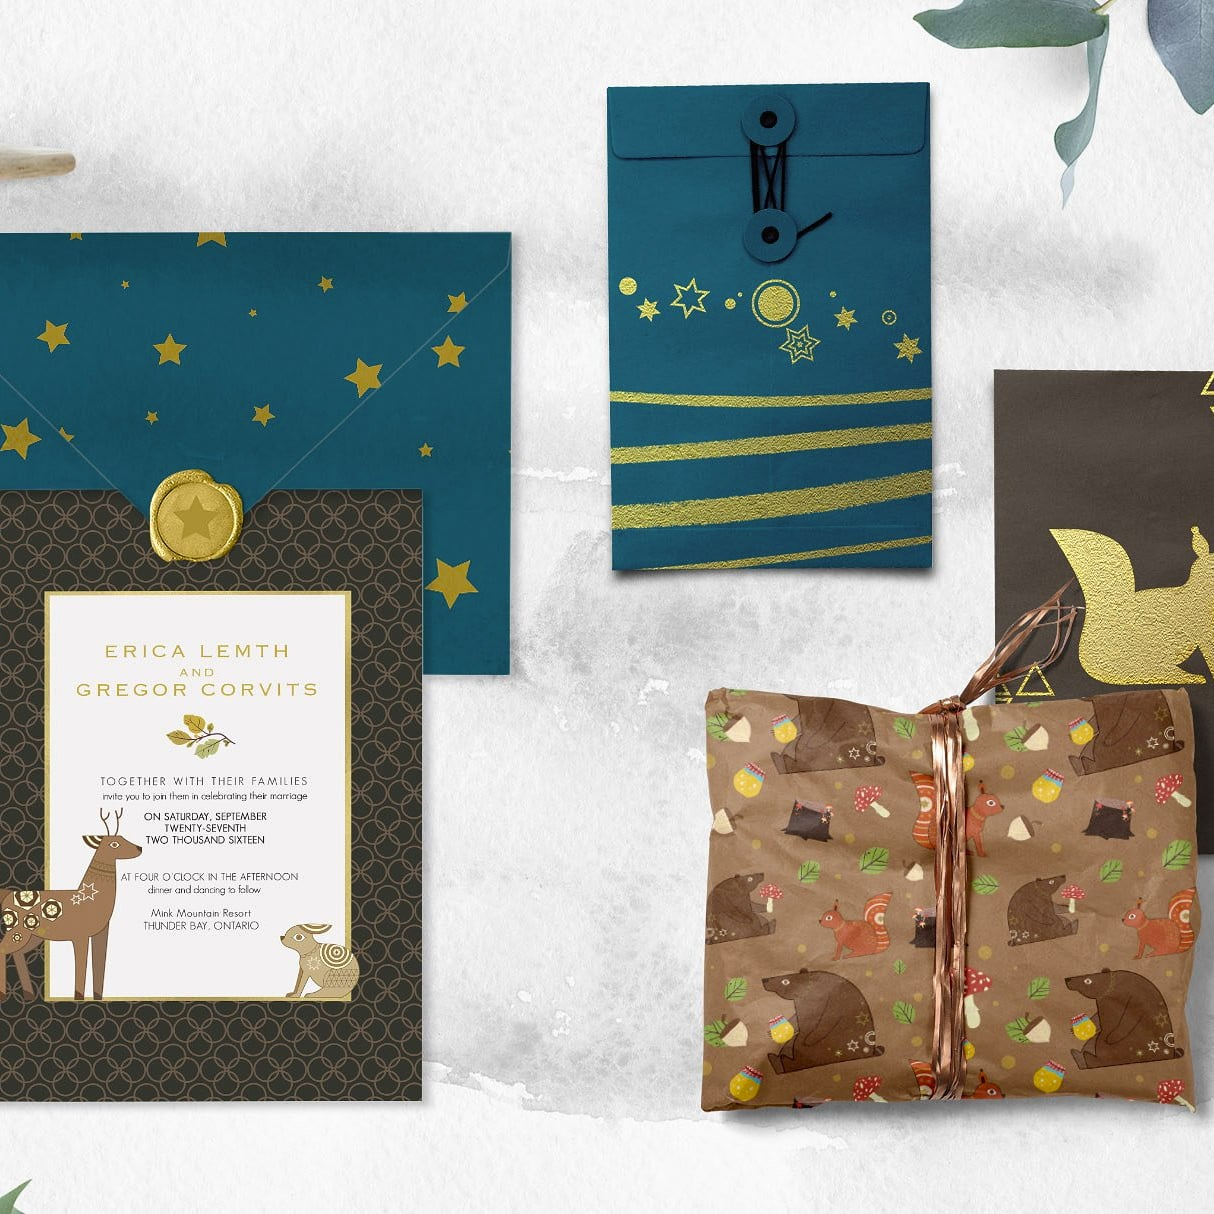 Folk Tale: a Set of Animals Illustrations and Decorative Elements cover image.